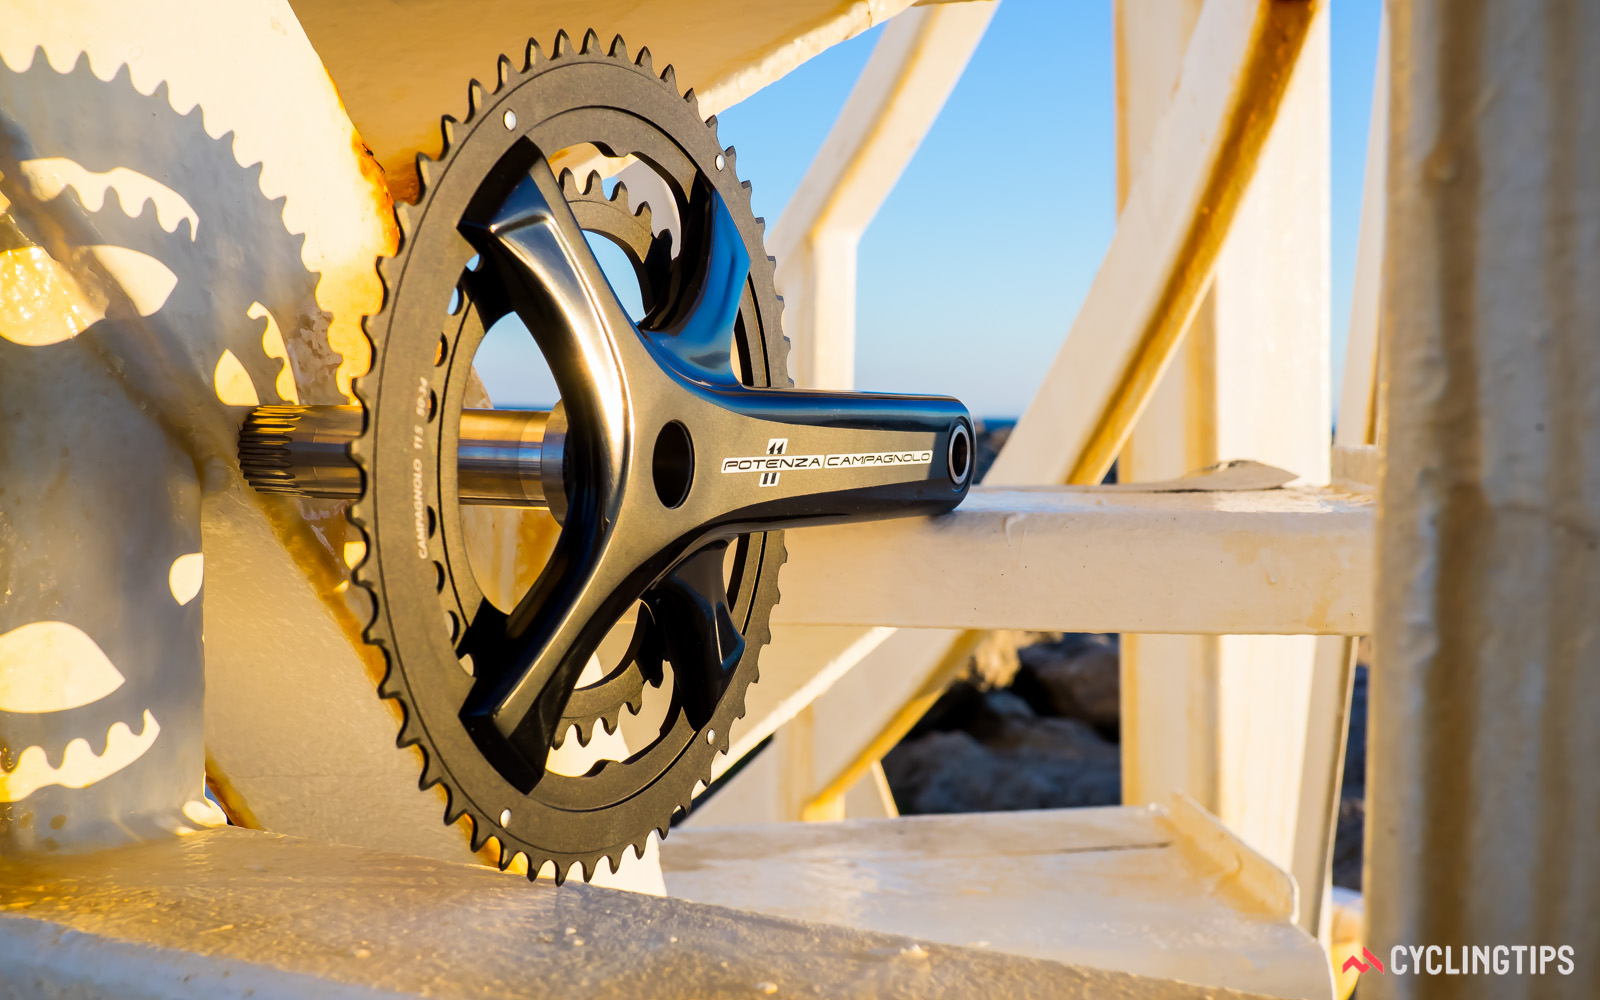 Campagnolo's four-arm crank design allow standard, semi-compact and compact chainrings to be used interchangeably.